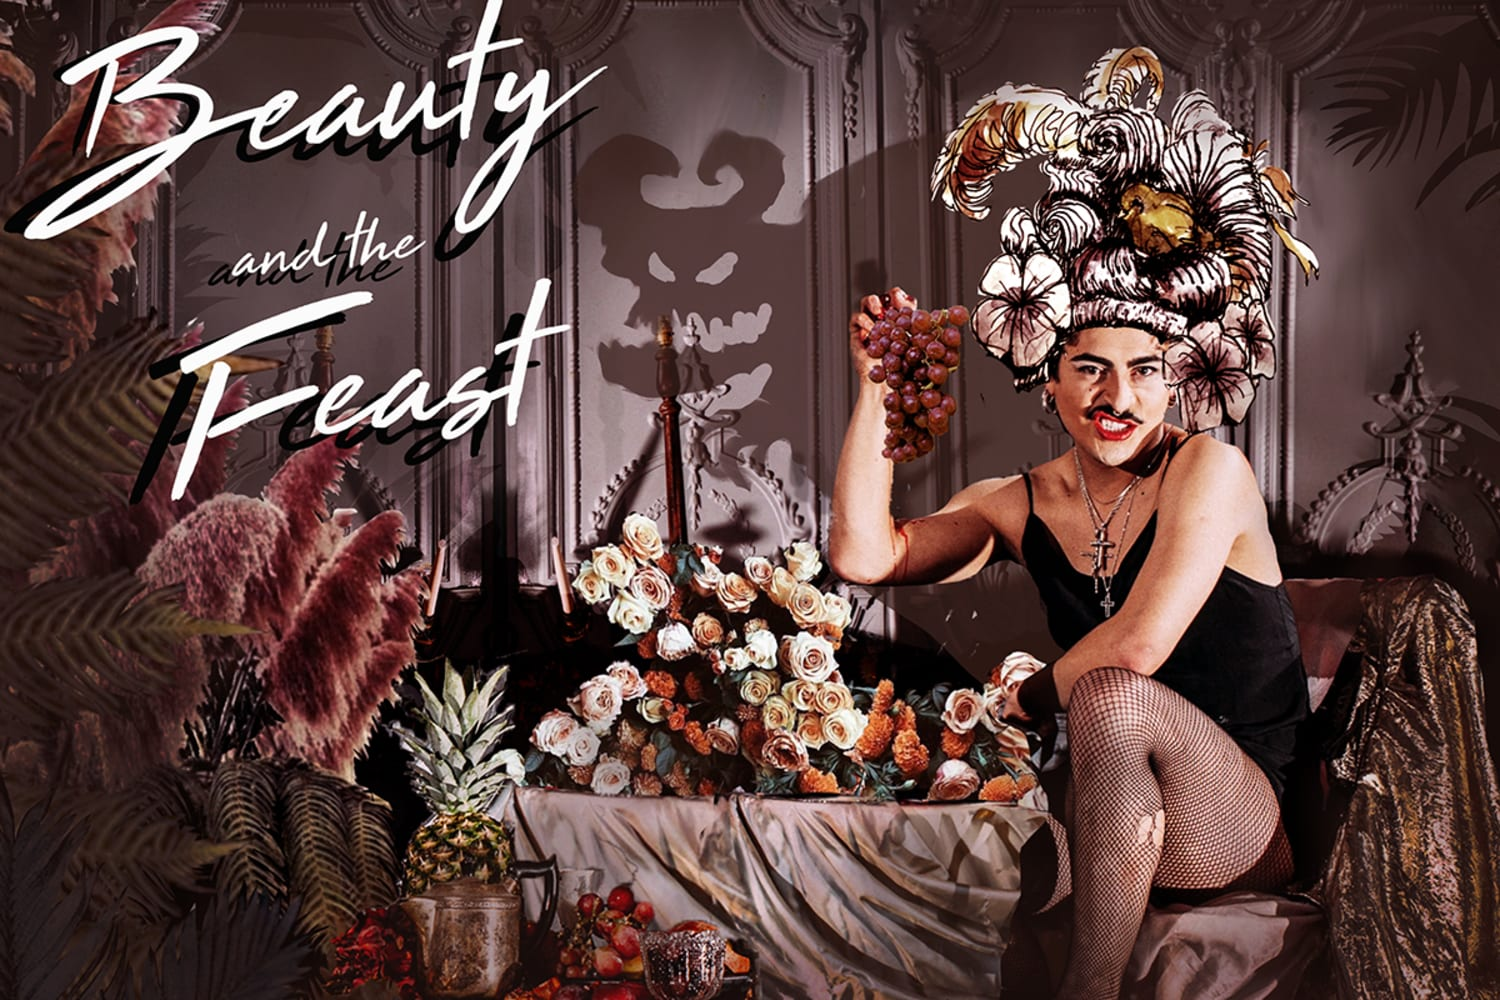 Beauty and the Feast by Darling Edge and the Grubclub